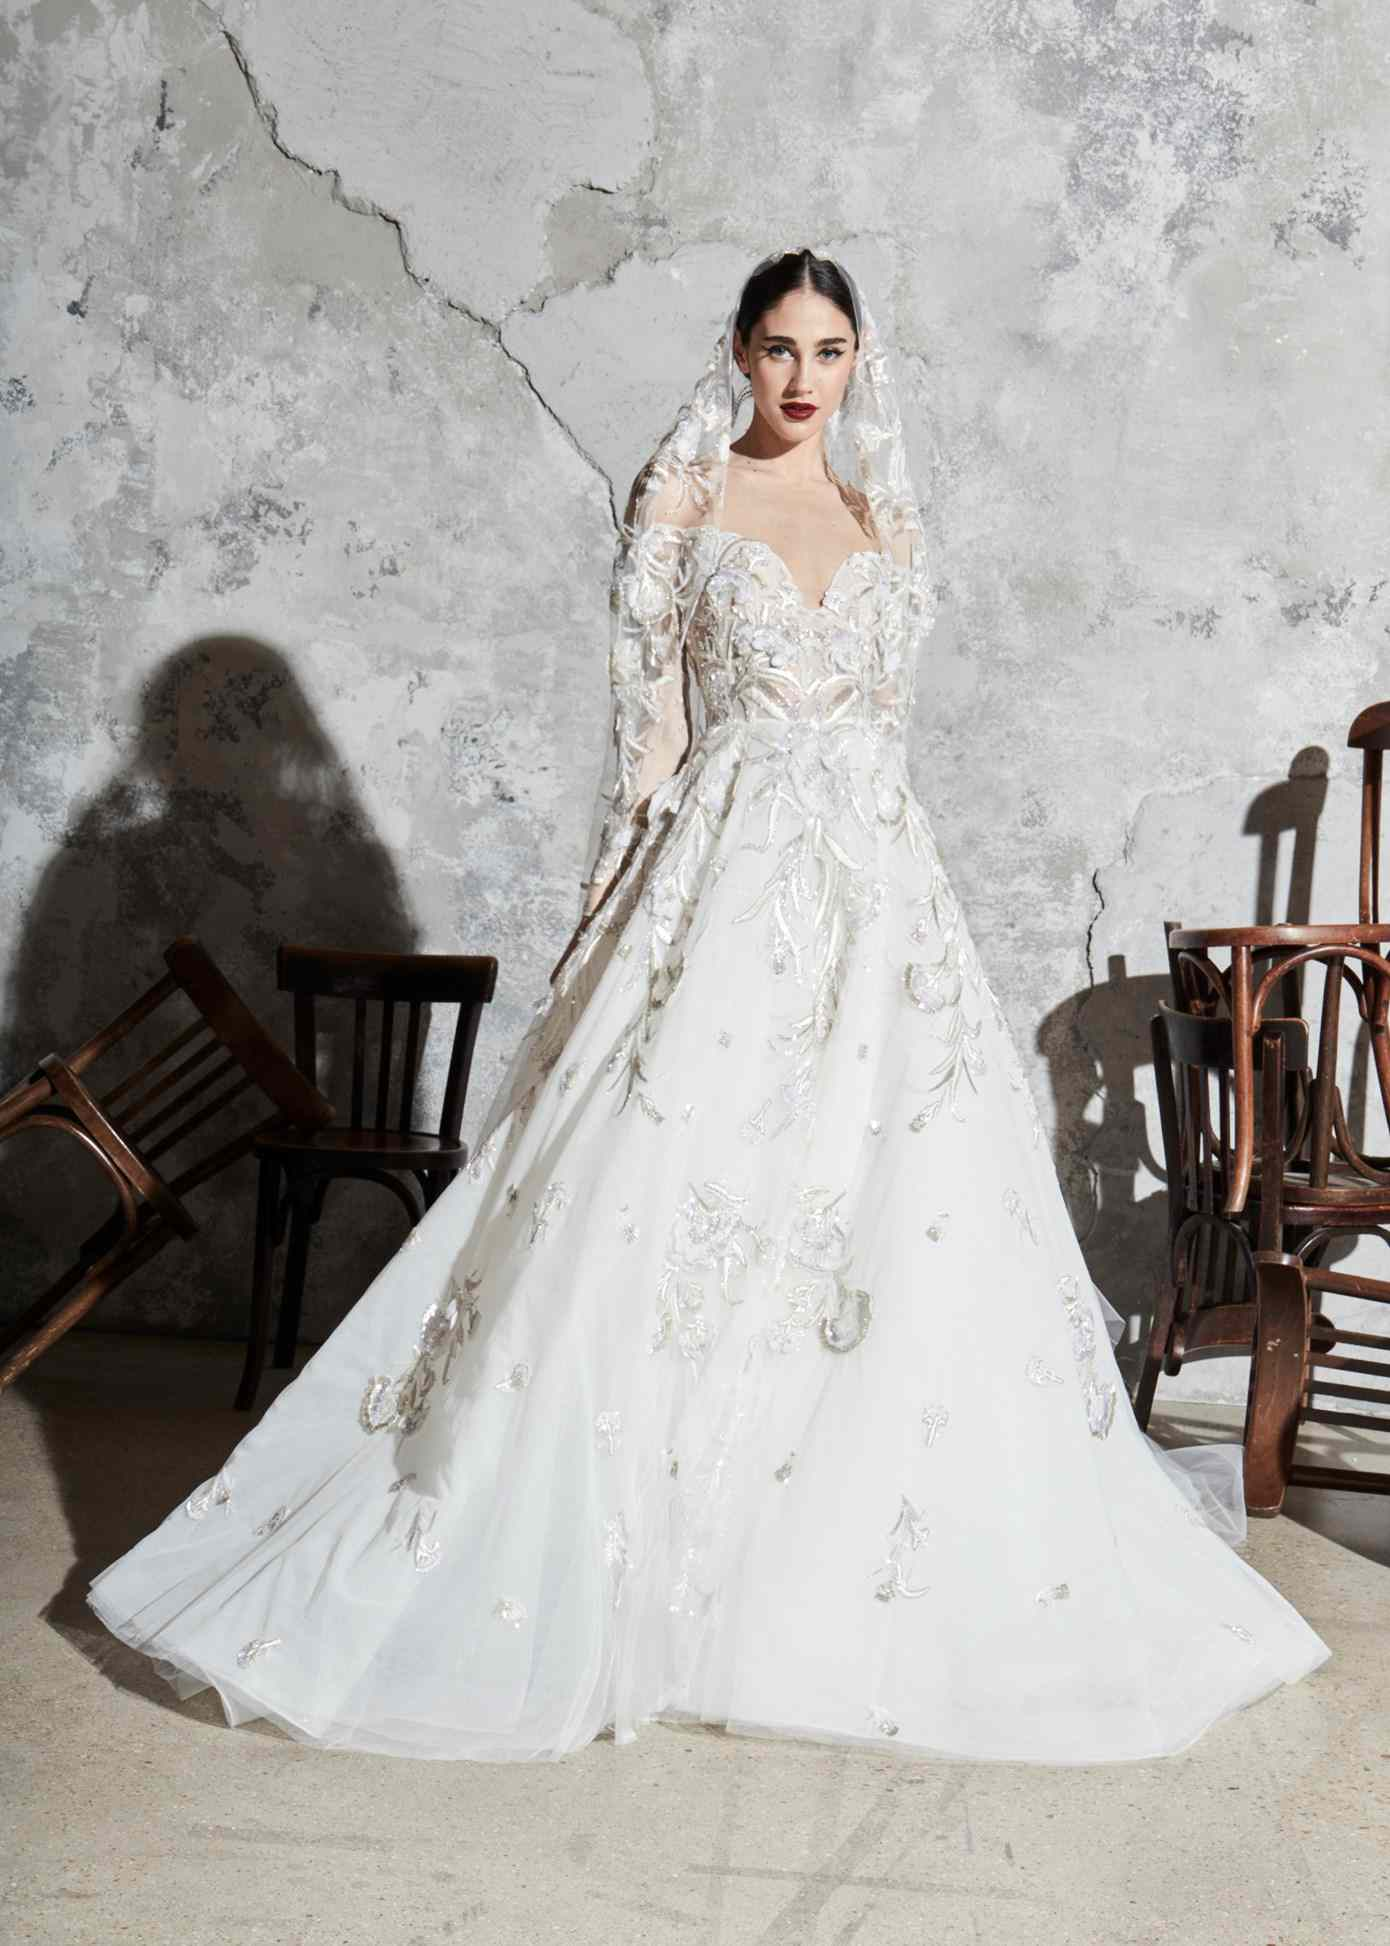 Model in off-the-shoulder long-sleeve ballgown with deep sweetheart neckline and silver and gold embroidery with a matching veil